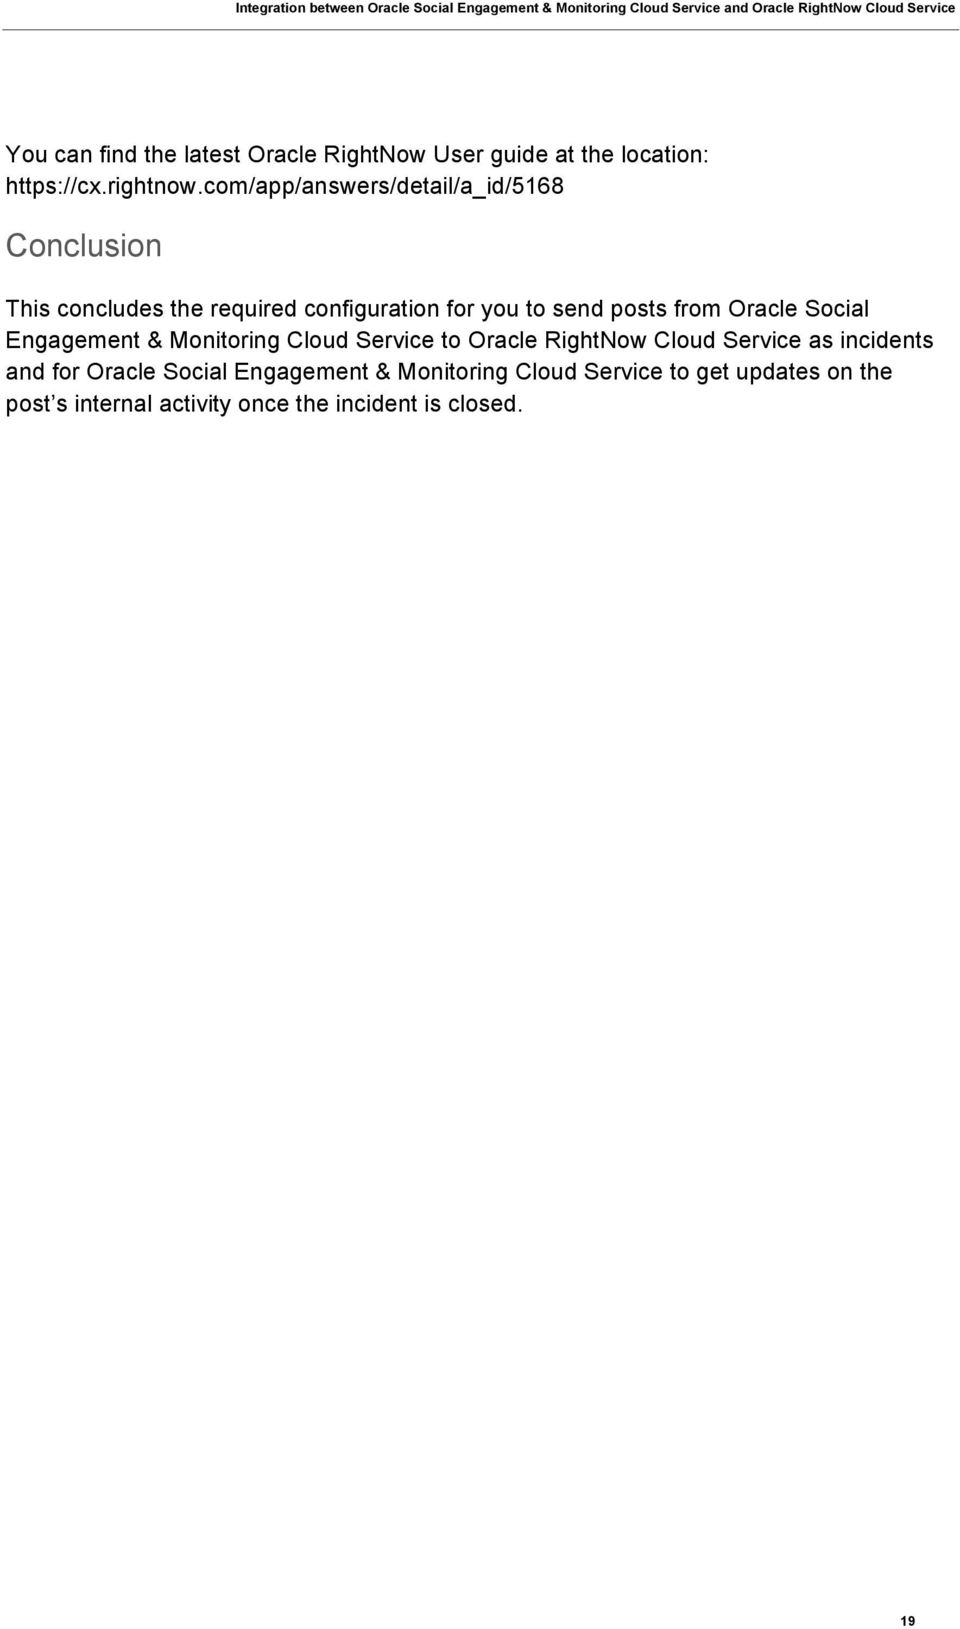 from Oracle Social Engagement & Monitoring Cloud Service to Oracle RightNow Cloud Service as incidents and